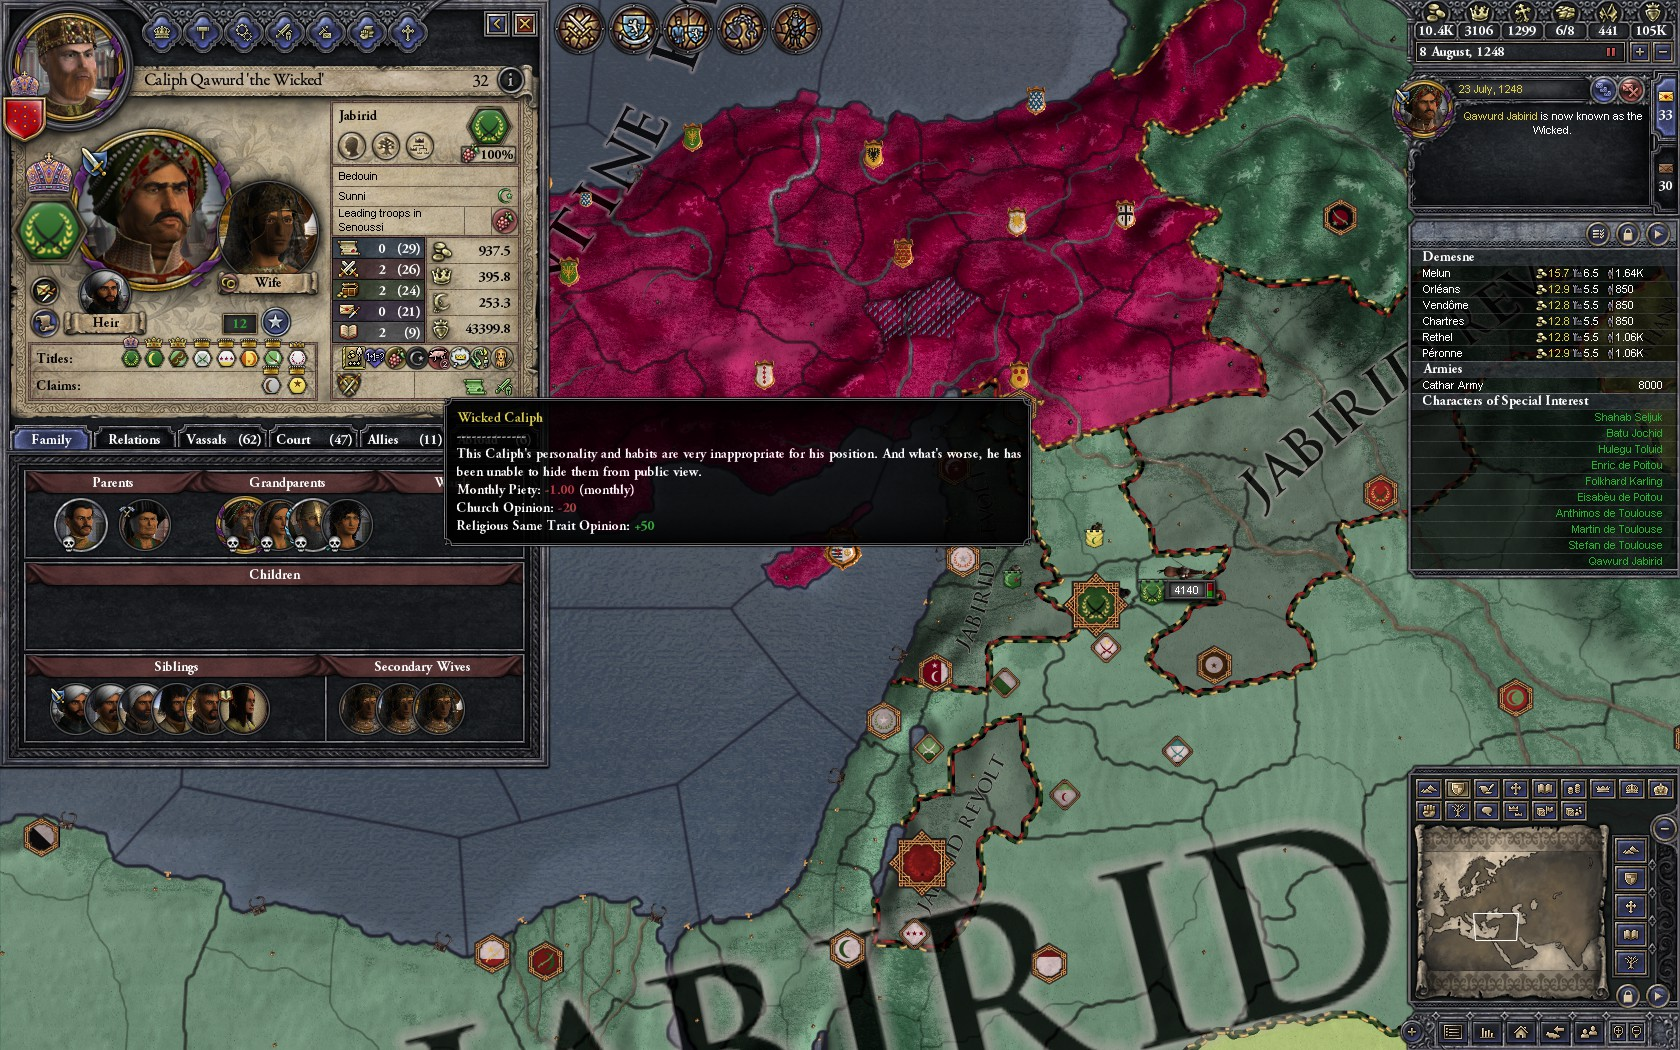 Steam Community :: Screenshot :: The imbecile wicked caliph... He didn't  last long